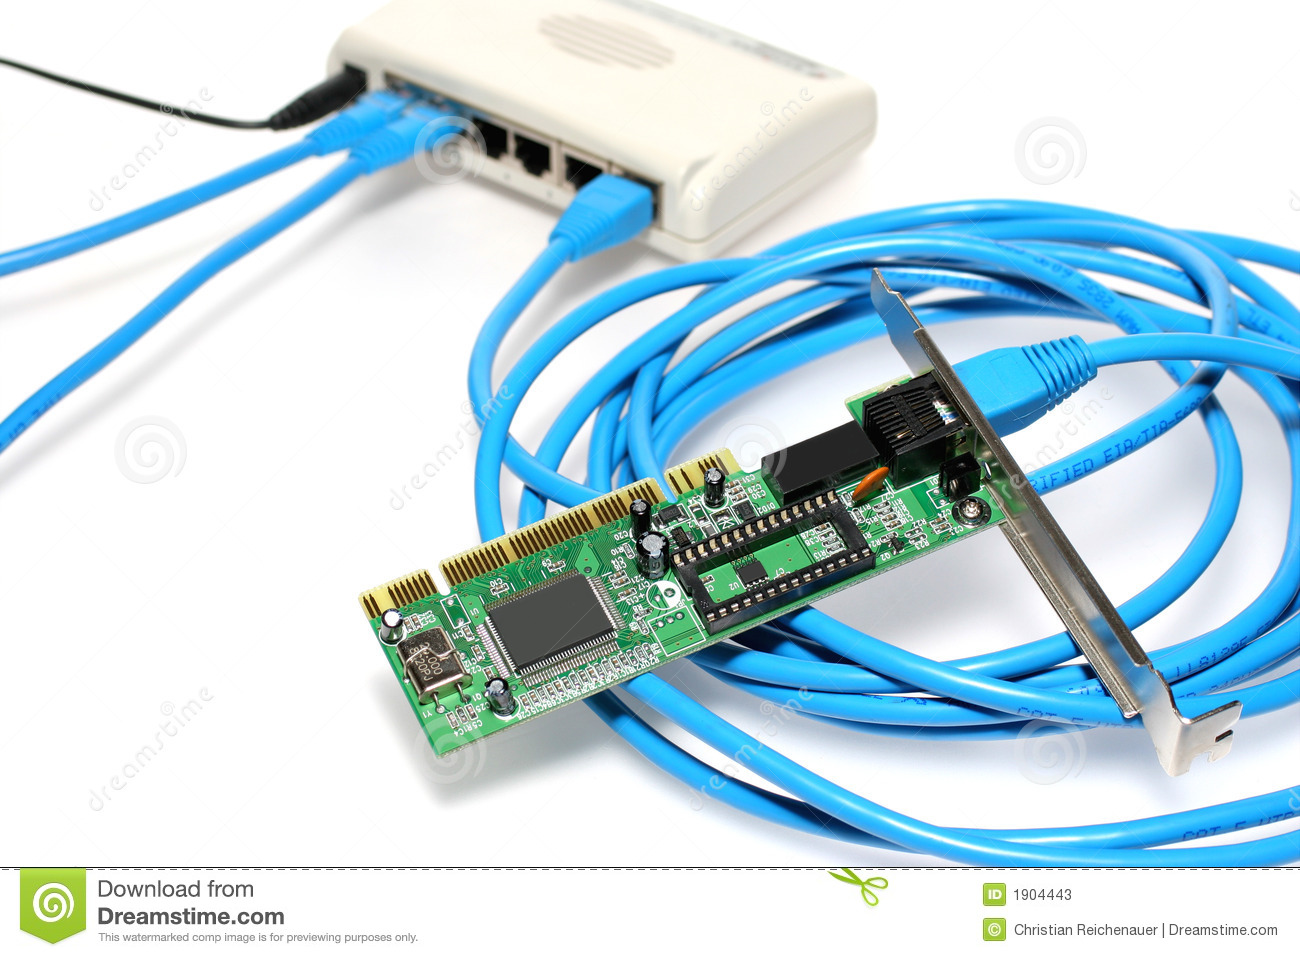 Network Components Stock Photos - Image: 1904443